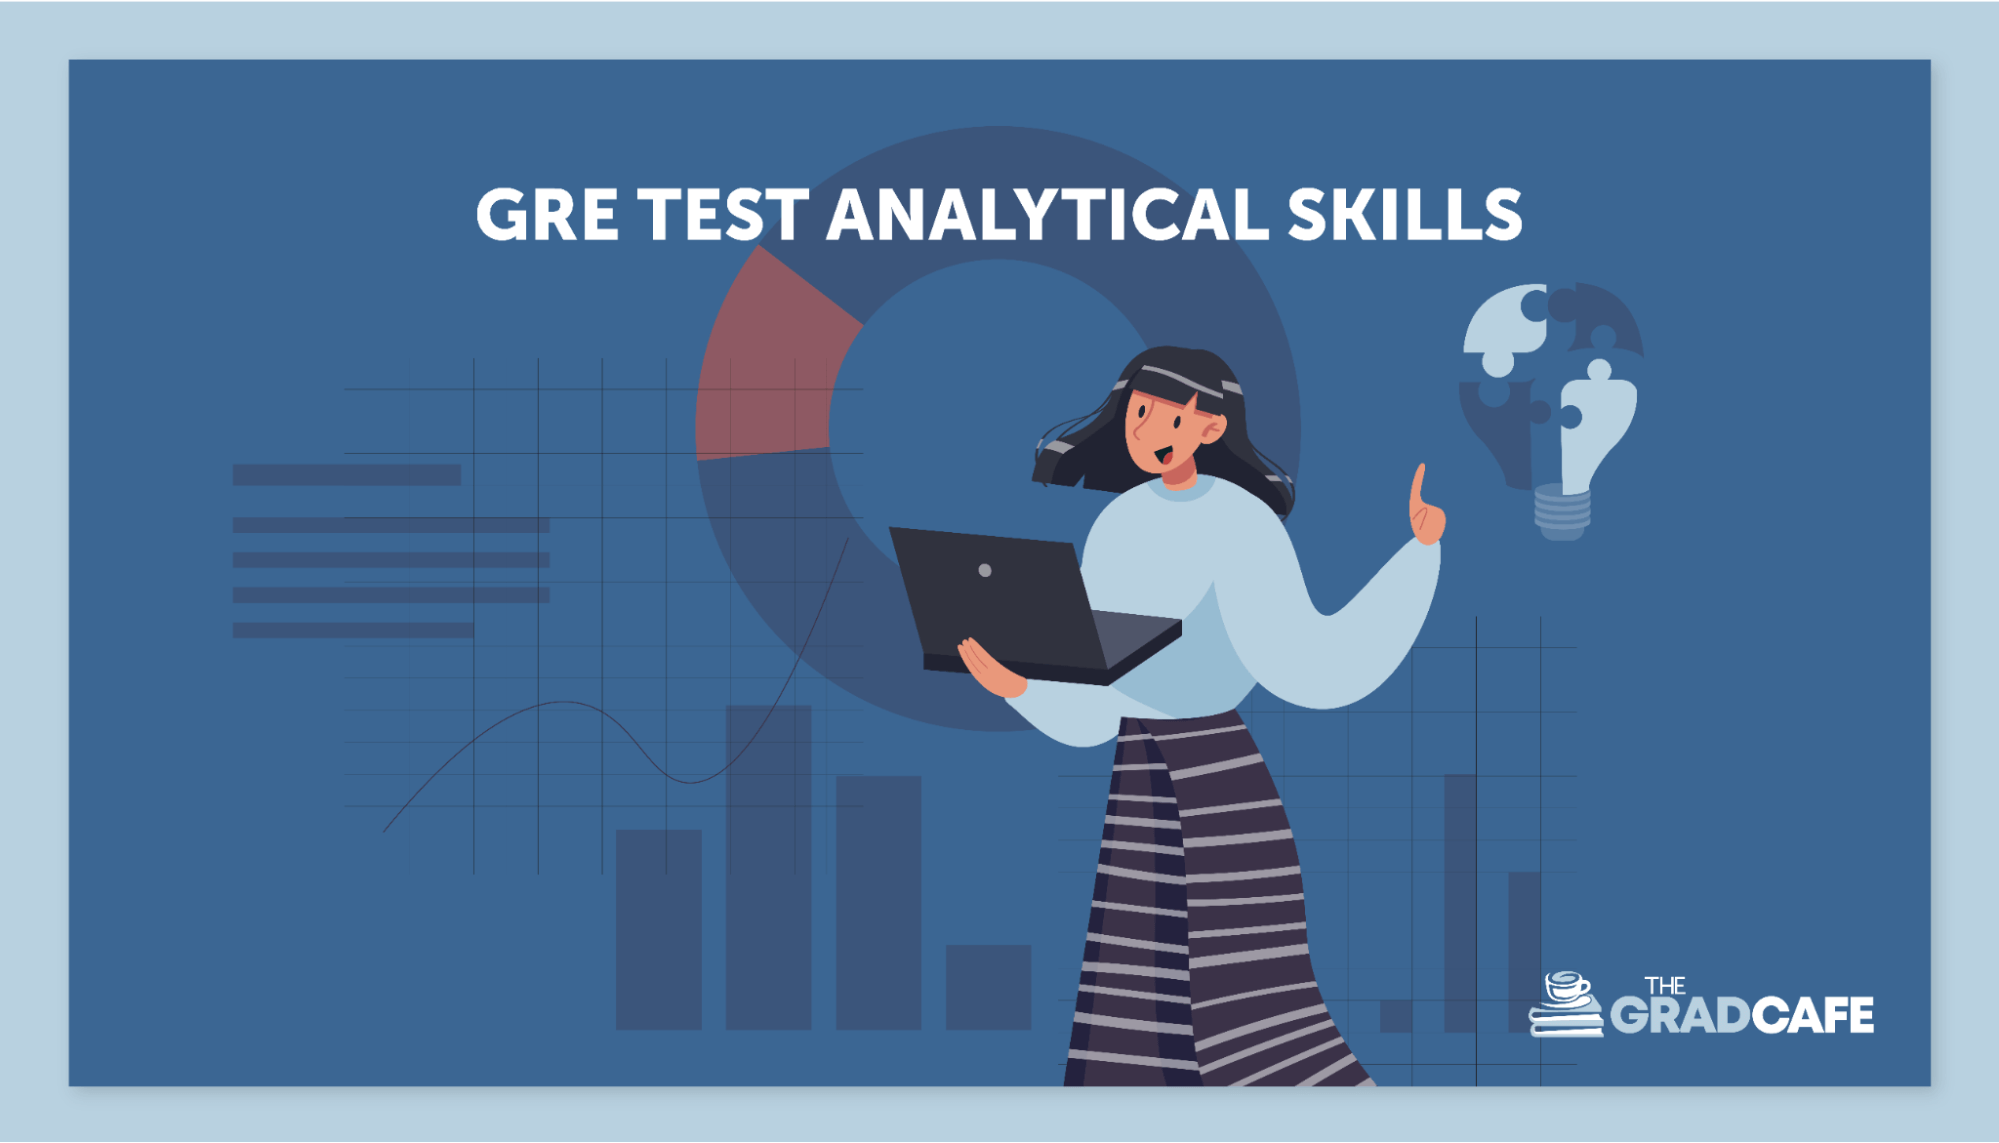 The GRE exam tests your analytical and critical thinking skills